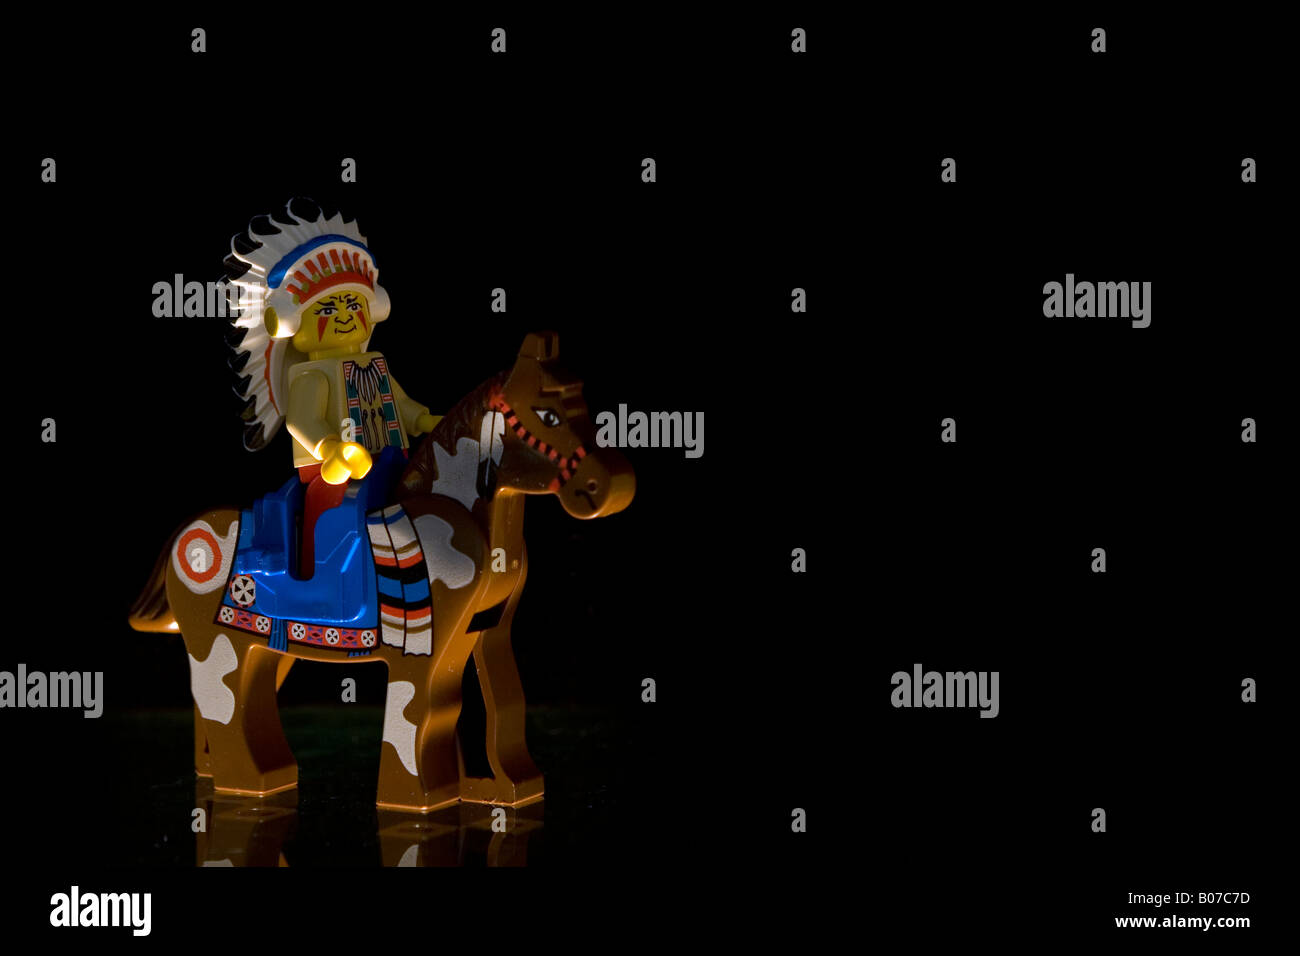 Lego Indian Chief sitting on Horse - Stock Image